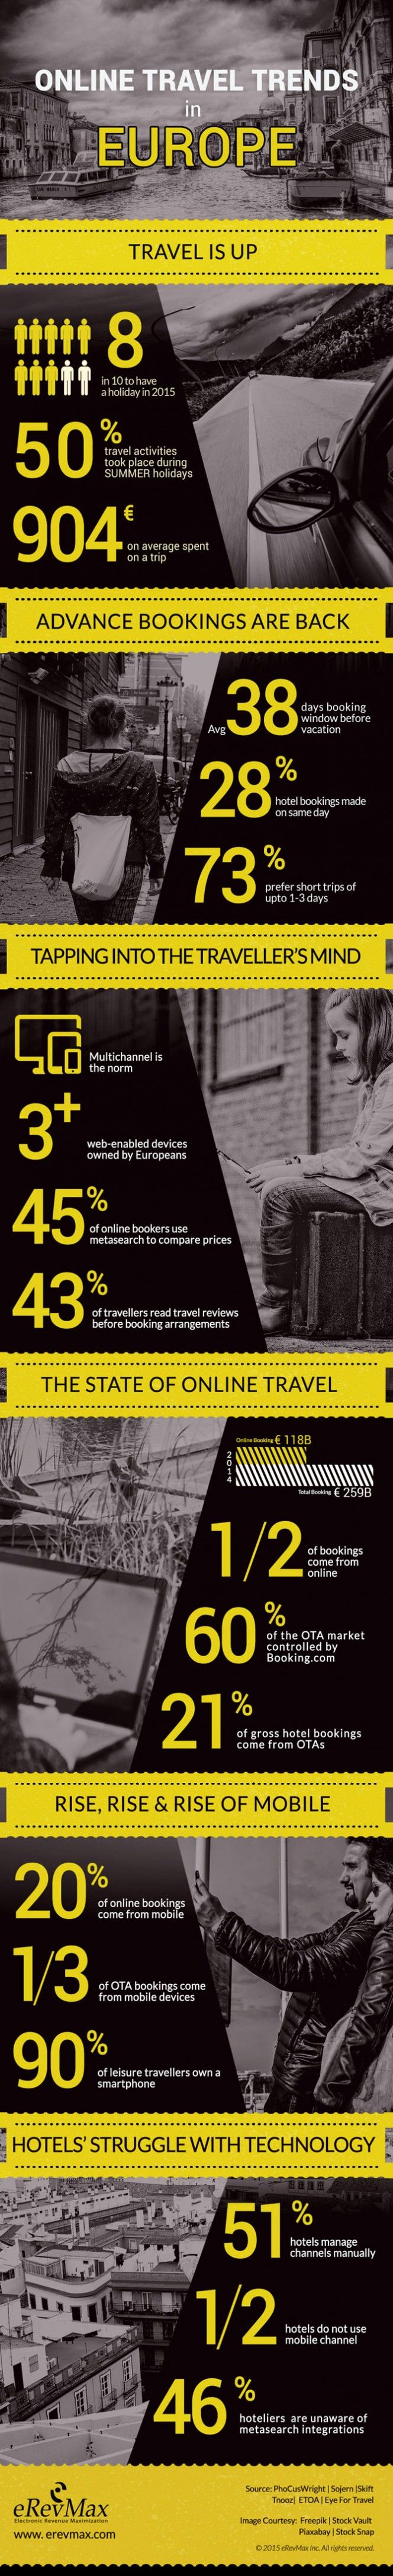 infographic-travel-trends-europe